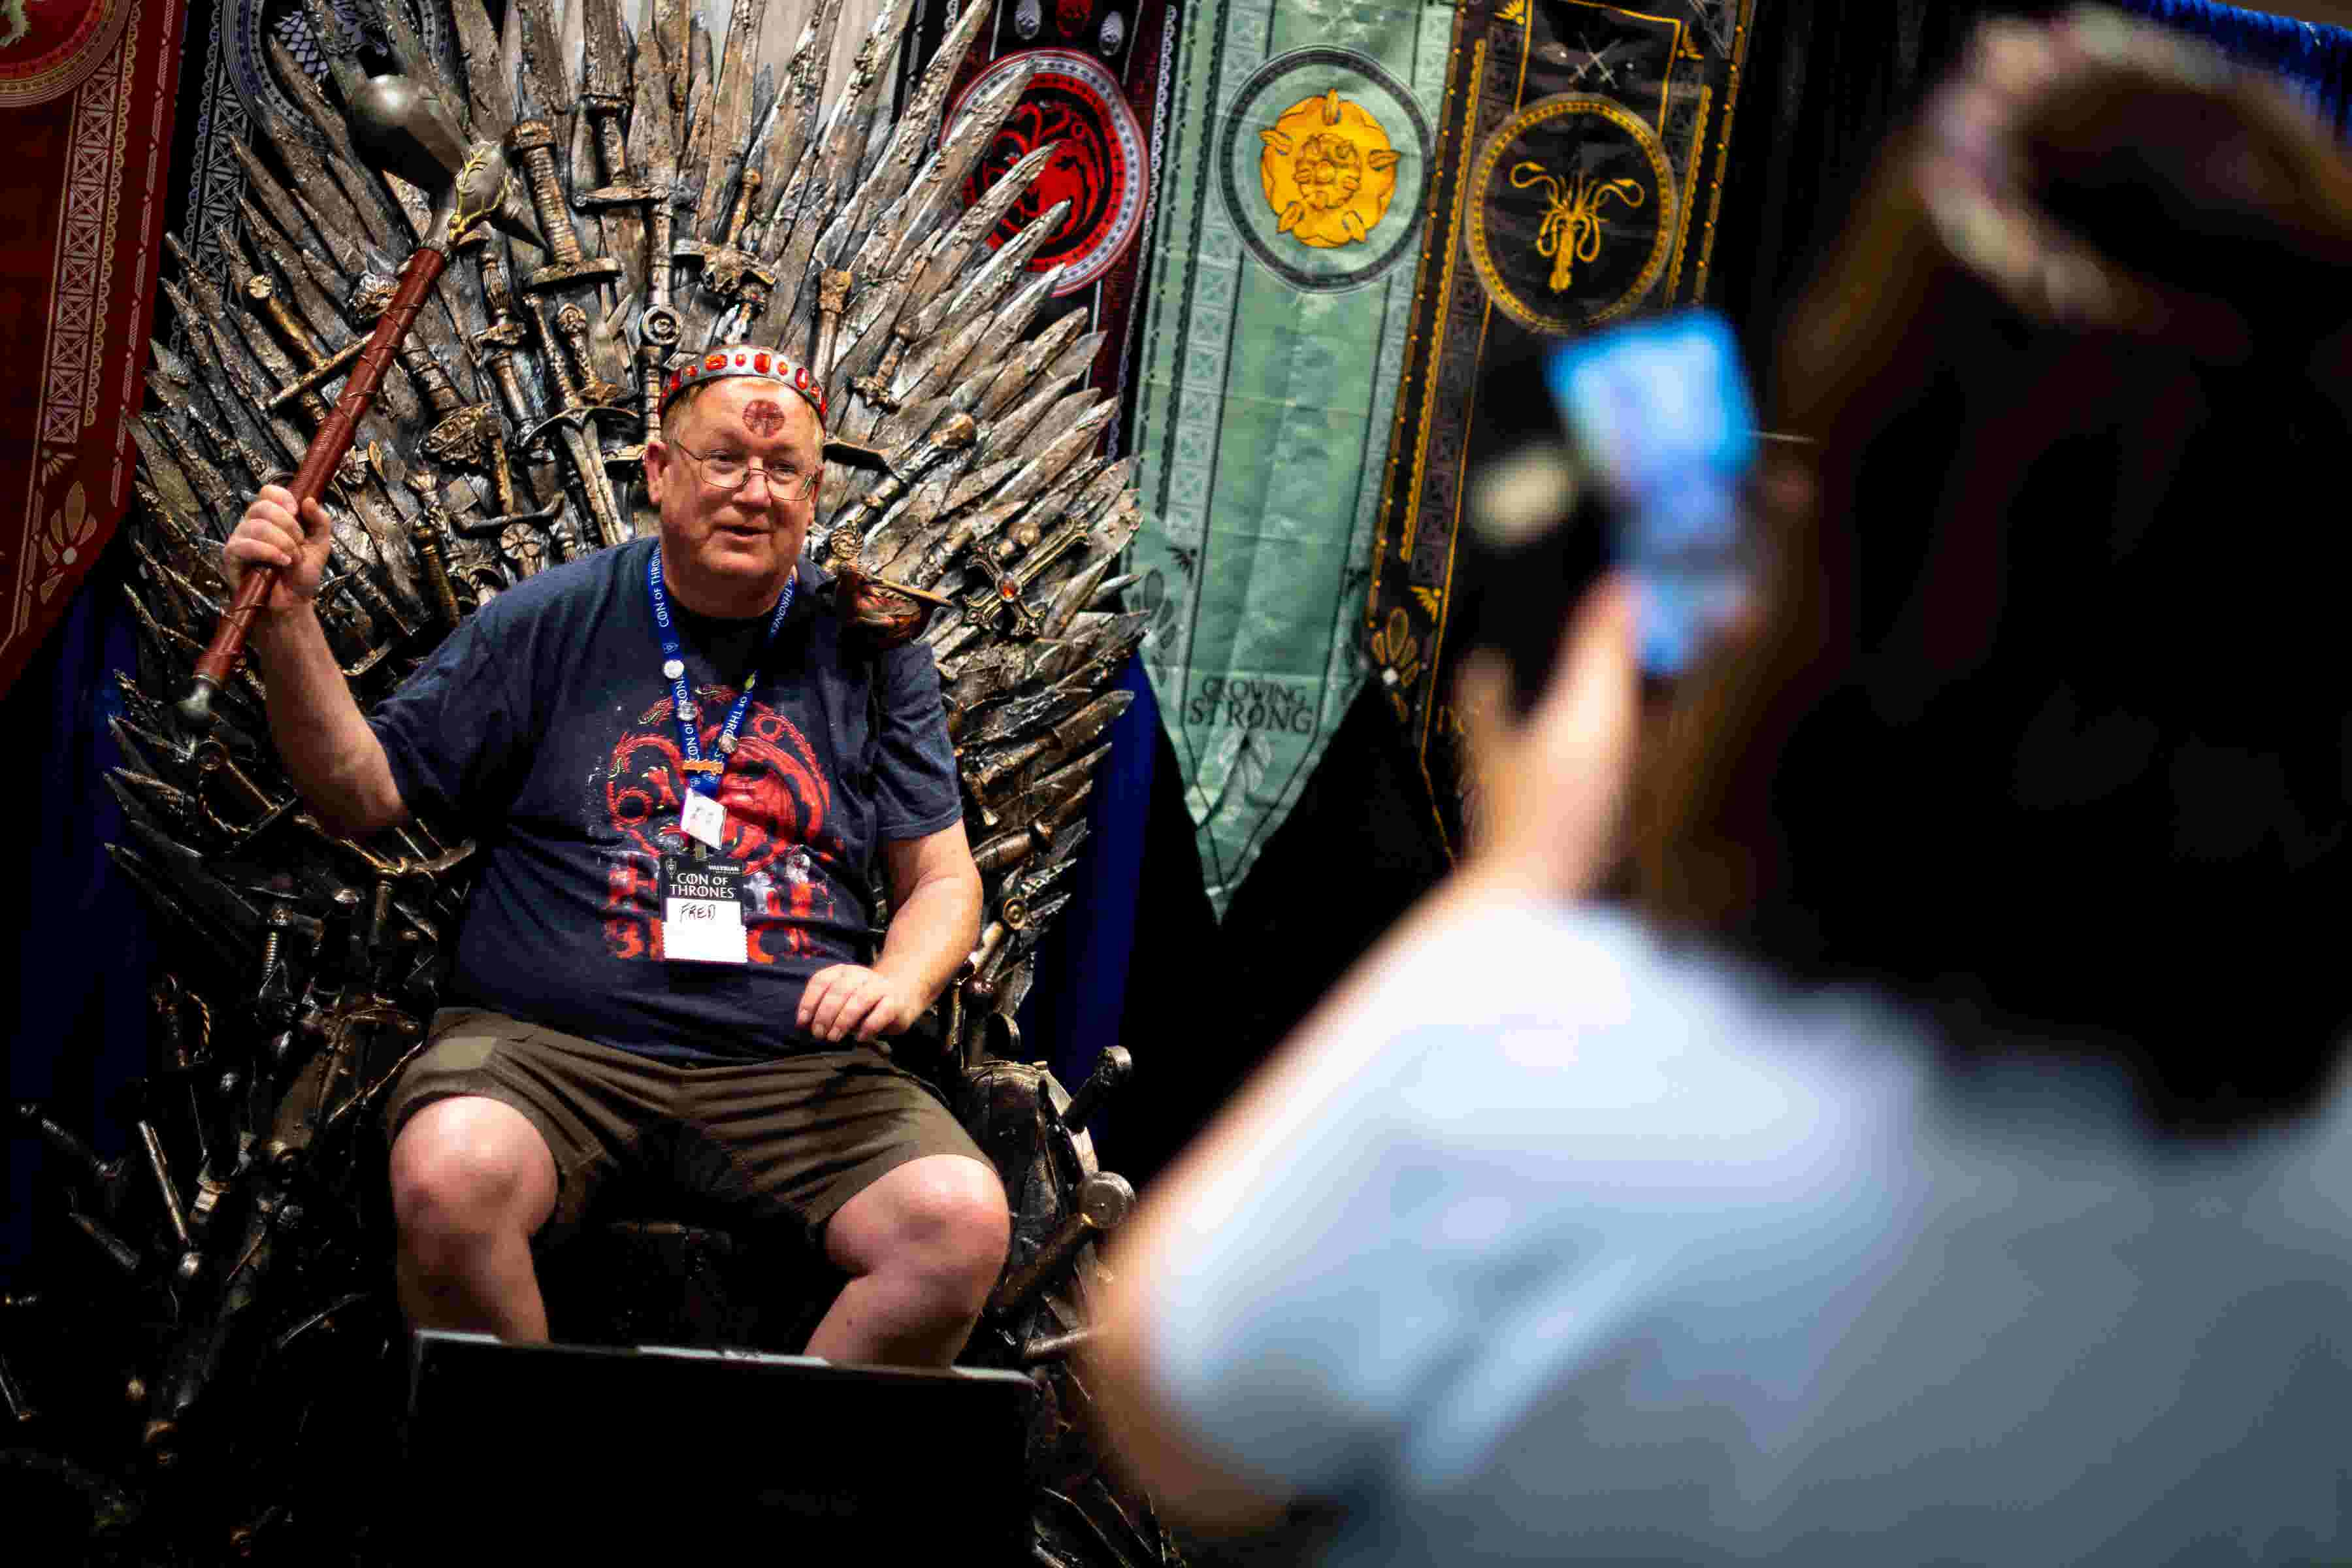 'Game of Thrones' fans flock to Nashville convention in wake of show's departure